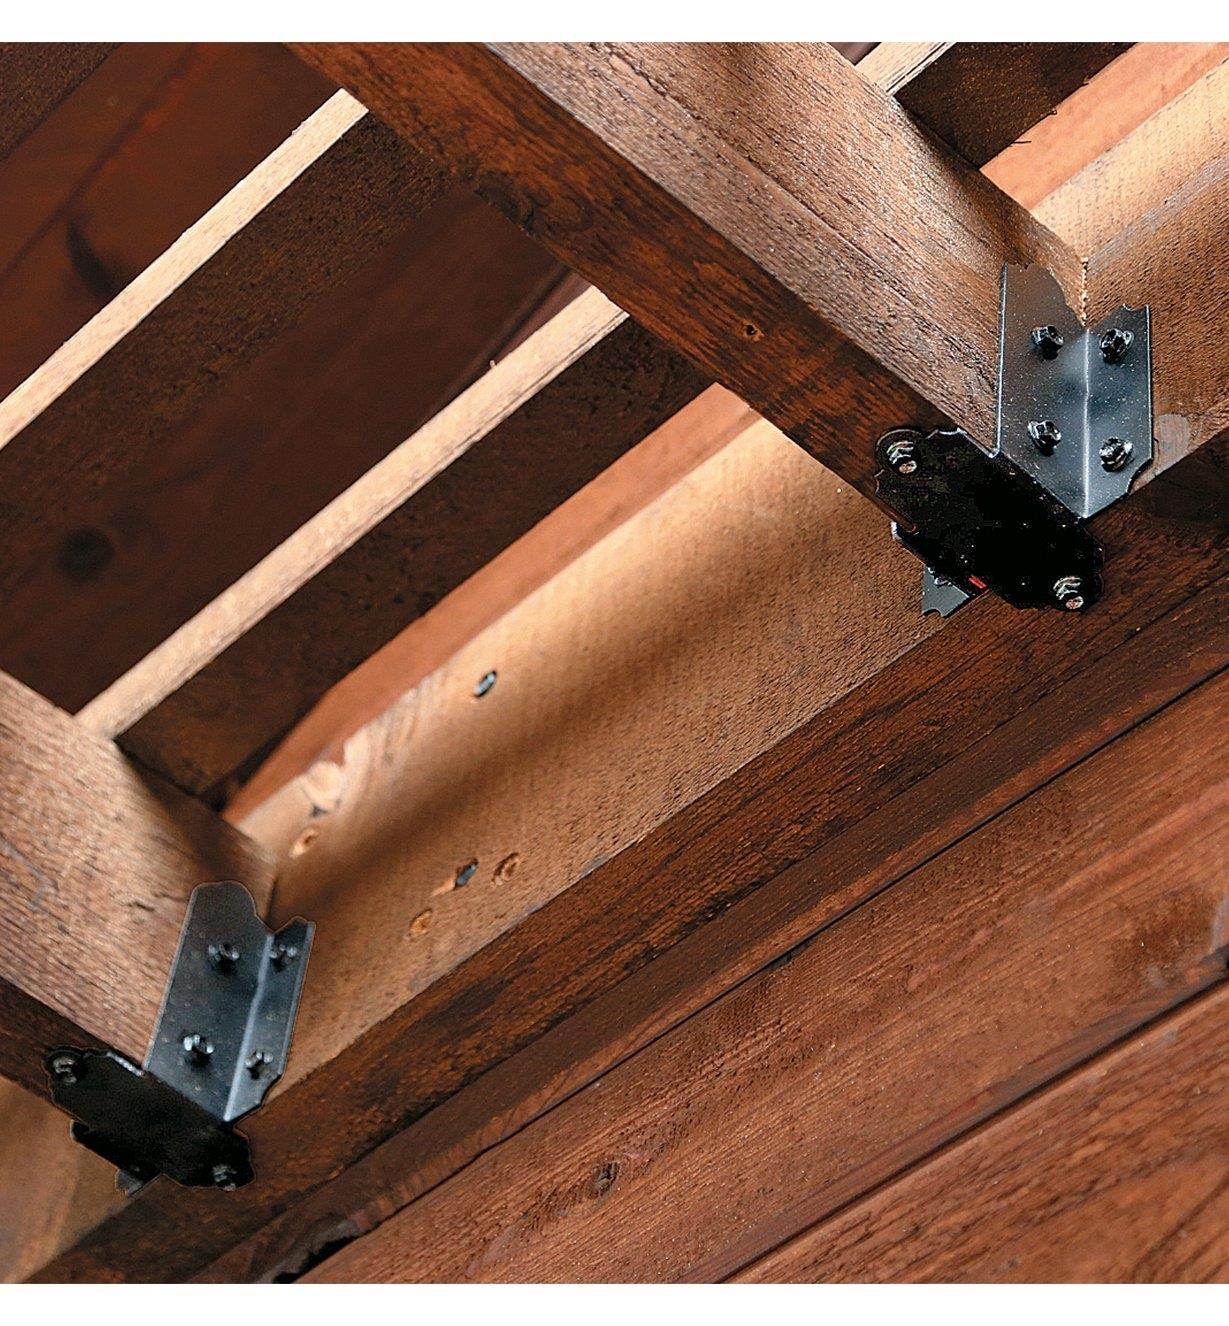 Example of Joist Hangers installed in an outdoor structure